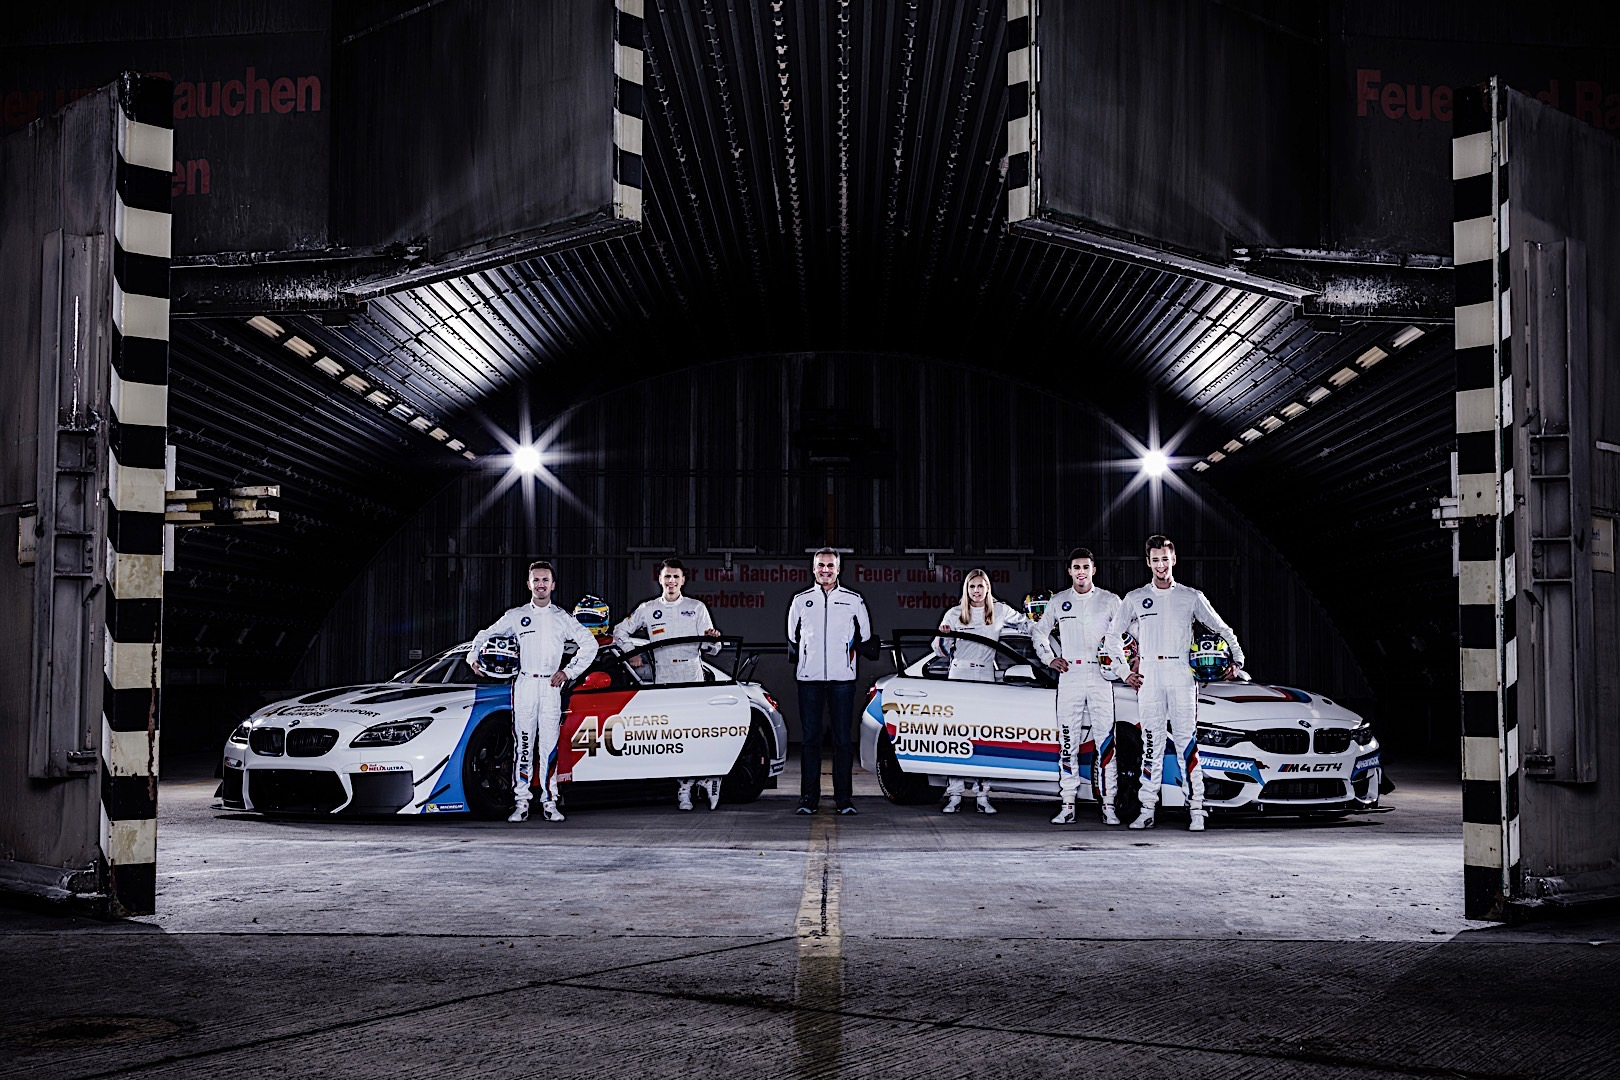 BMW 40 Years of Motorsport11 20 14